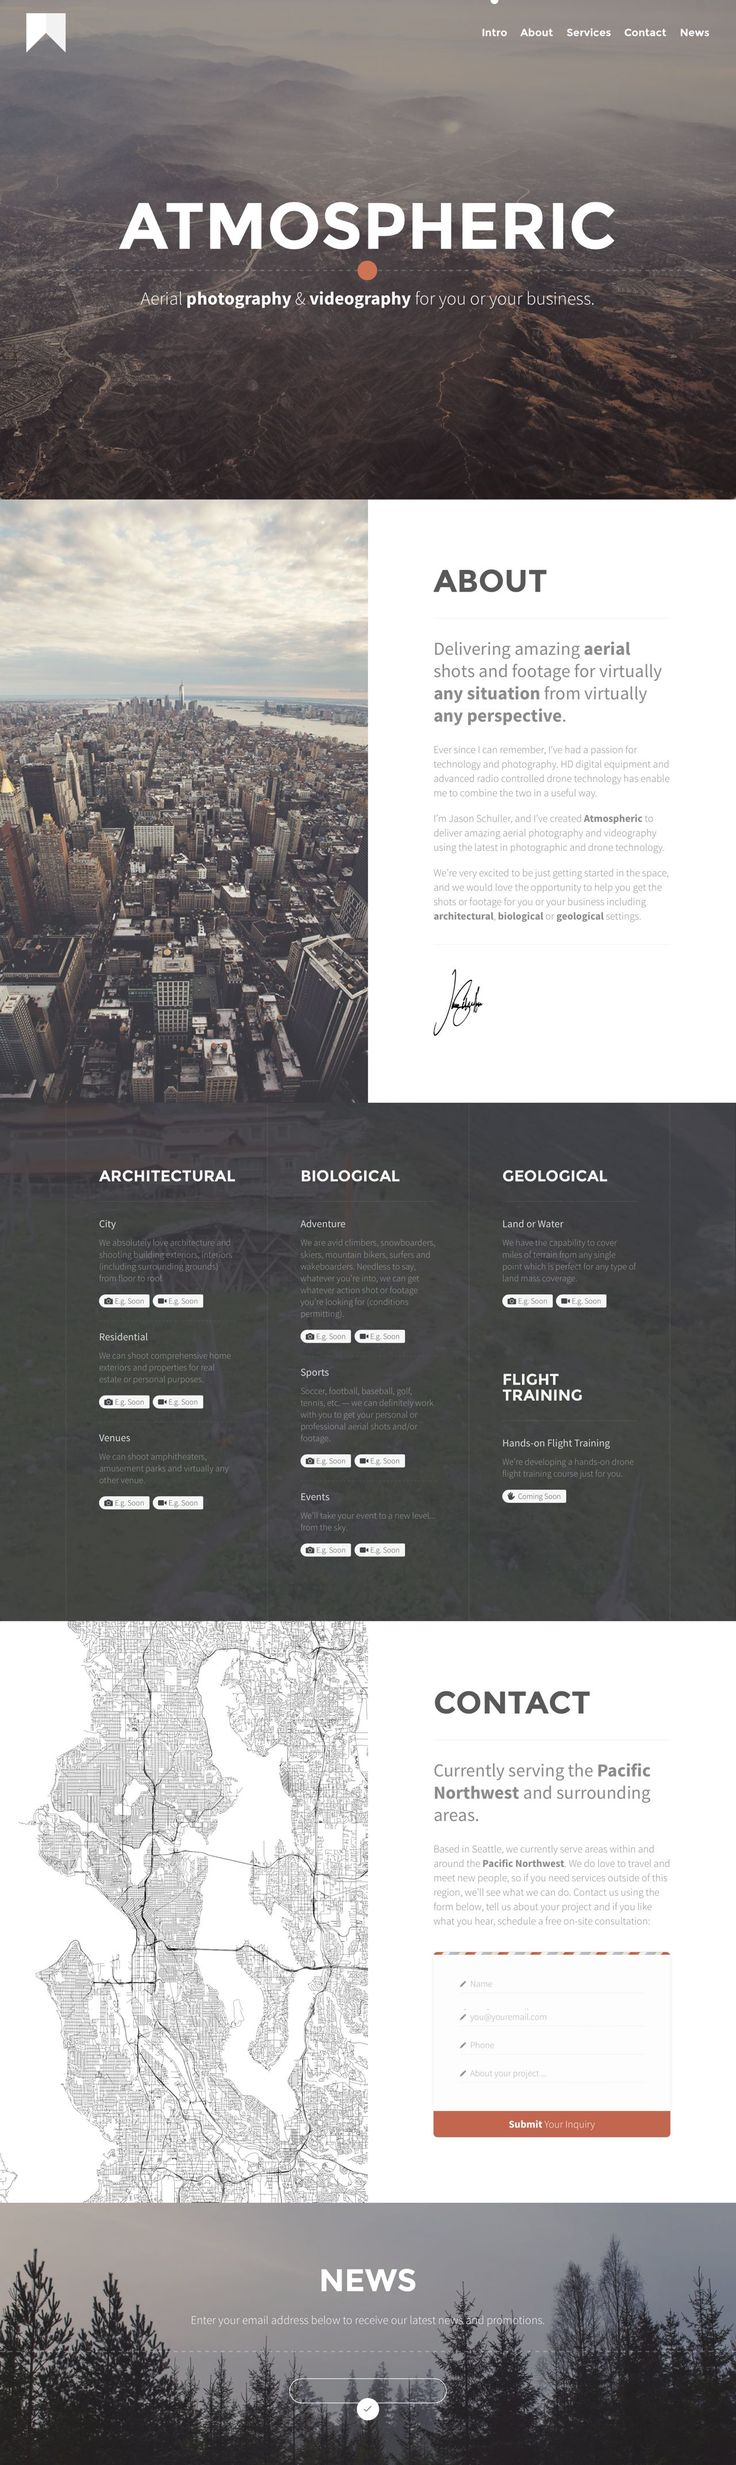 Refreshing layout in this responsive one pager for 'Atmospheric' - a new aerial photography service by Jason Schuller. Great choice of imagery and nice touch with the drone video background behind the upcoming showcase section. Seems like a fun venture!